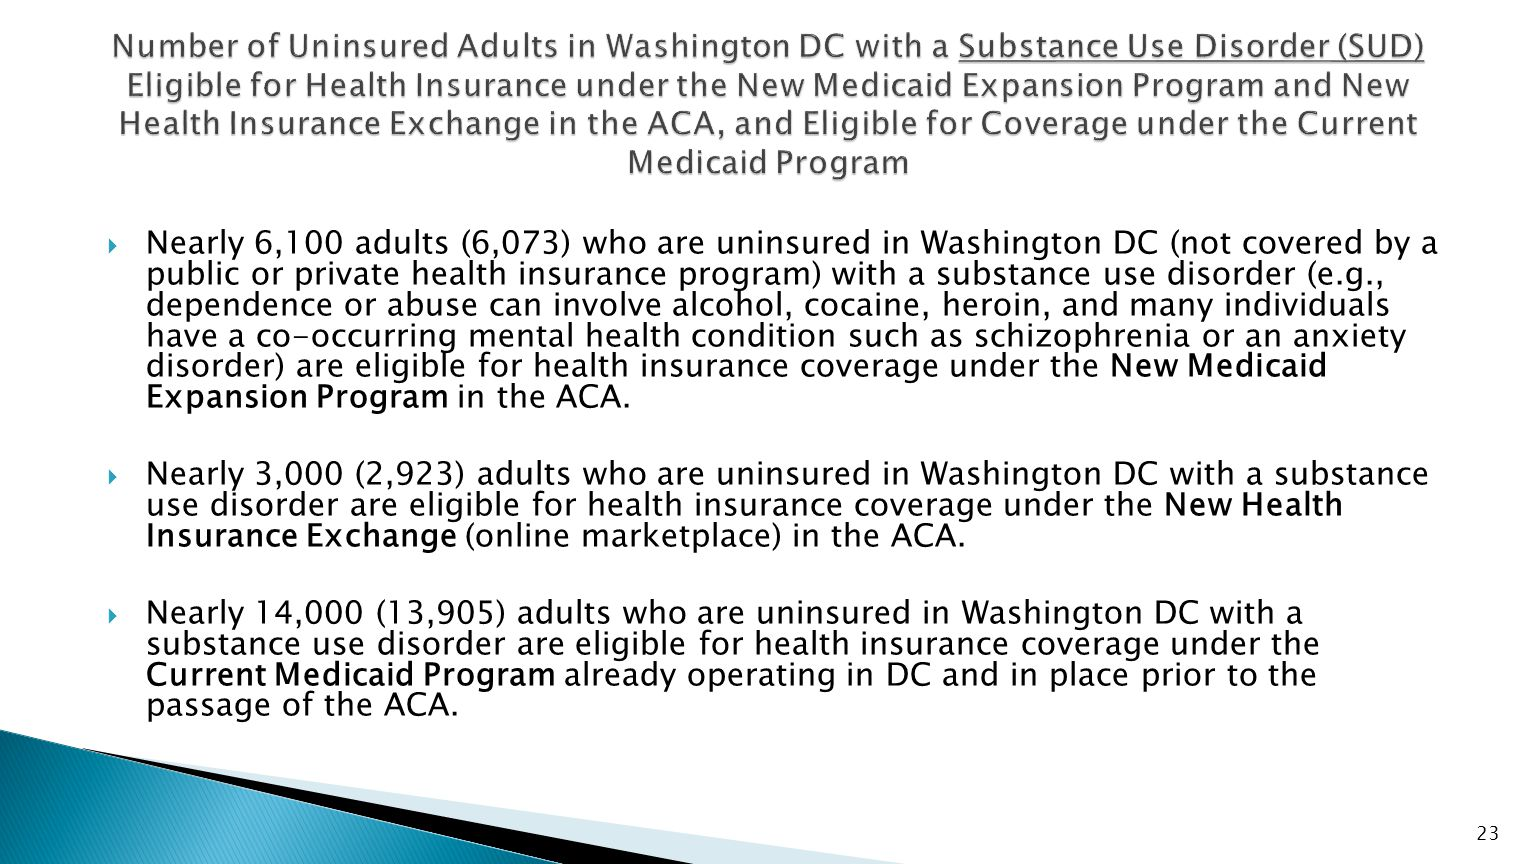  Nearly 6,100 adults (6,073) who are uninsured in Washington DC (not covered by a public or private health insurance program) with a substance use disorder (e.g., dependence or abuse can involve alcohol, cocaine, heroin, and many individuals have a co-occurring mental health condition such as schizophrenia or an anxiety disorder) are eligible for health insurance coverage under the New Medicaid Expansion Program in the ACA.